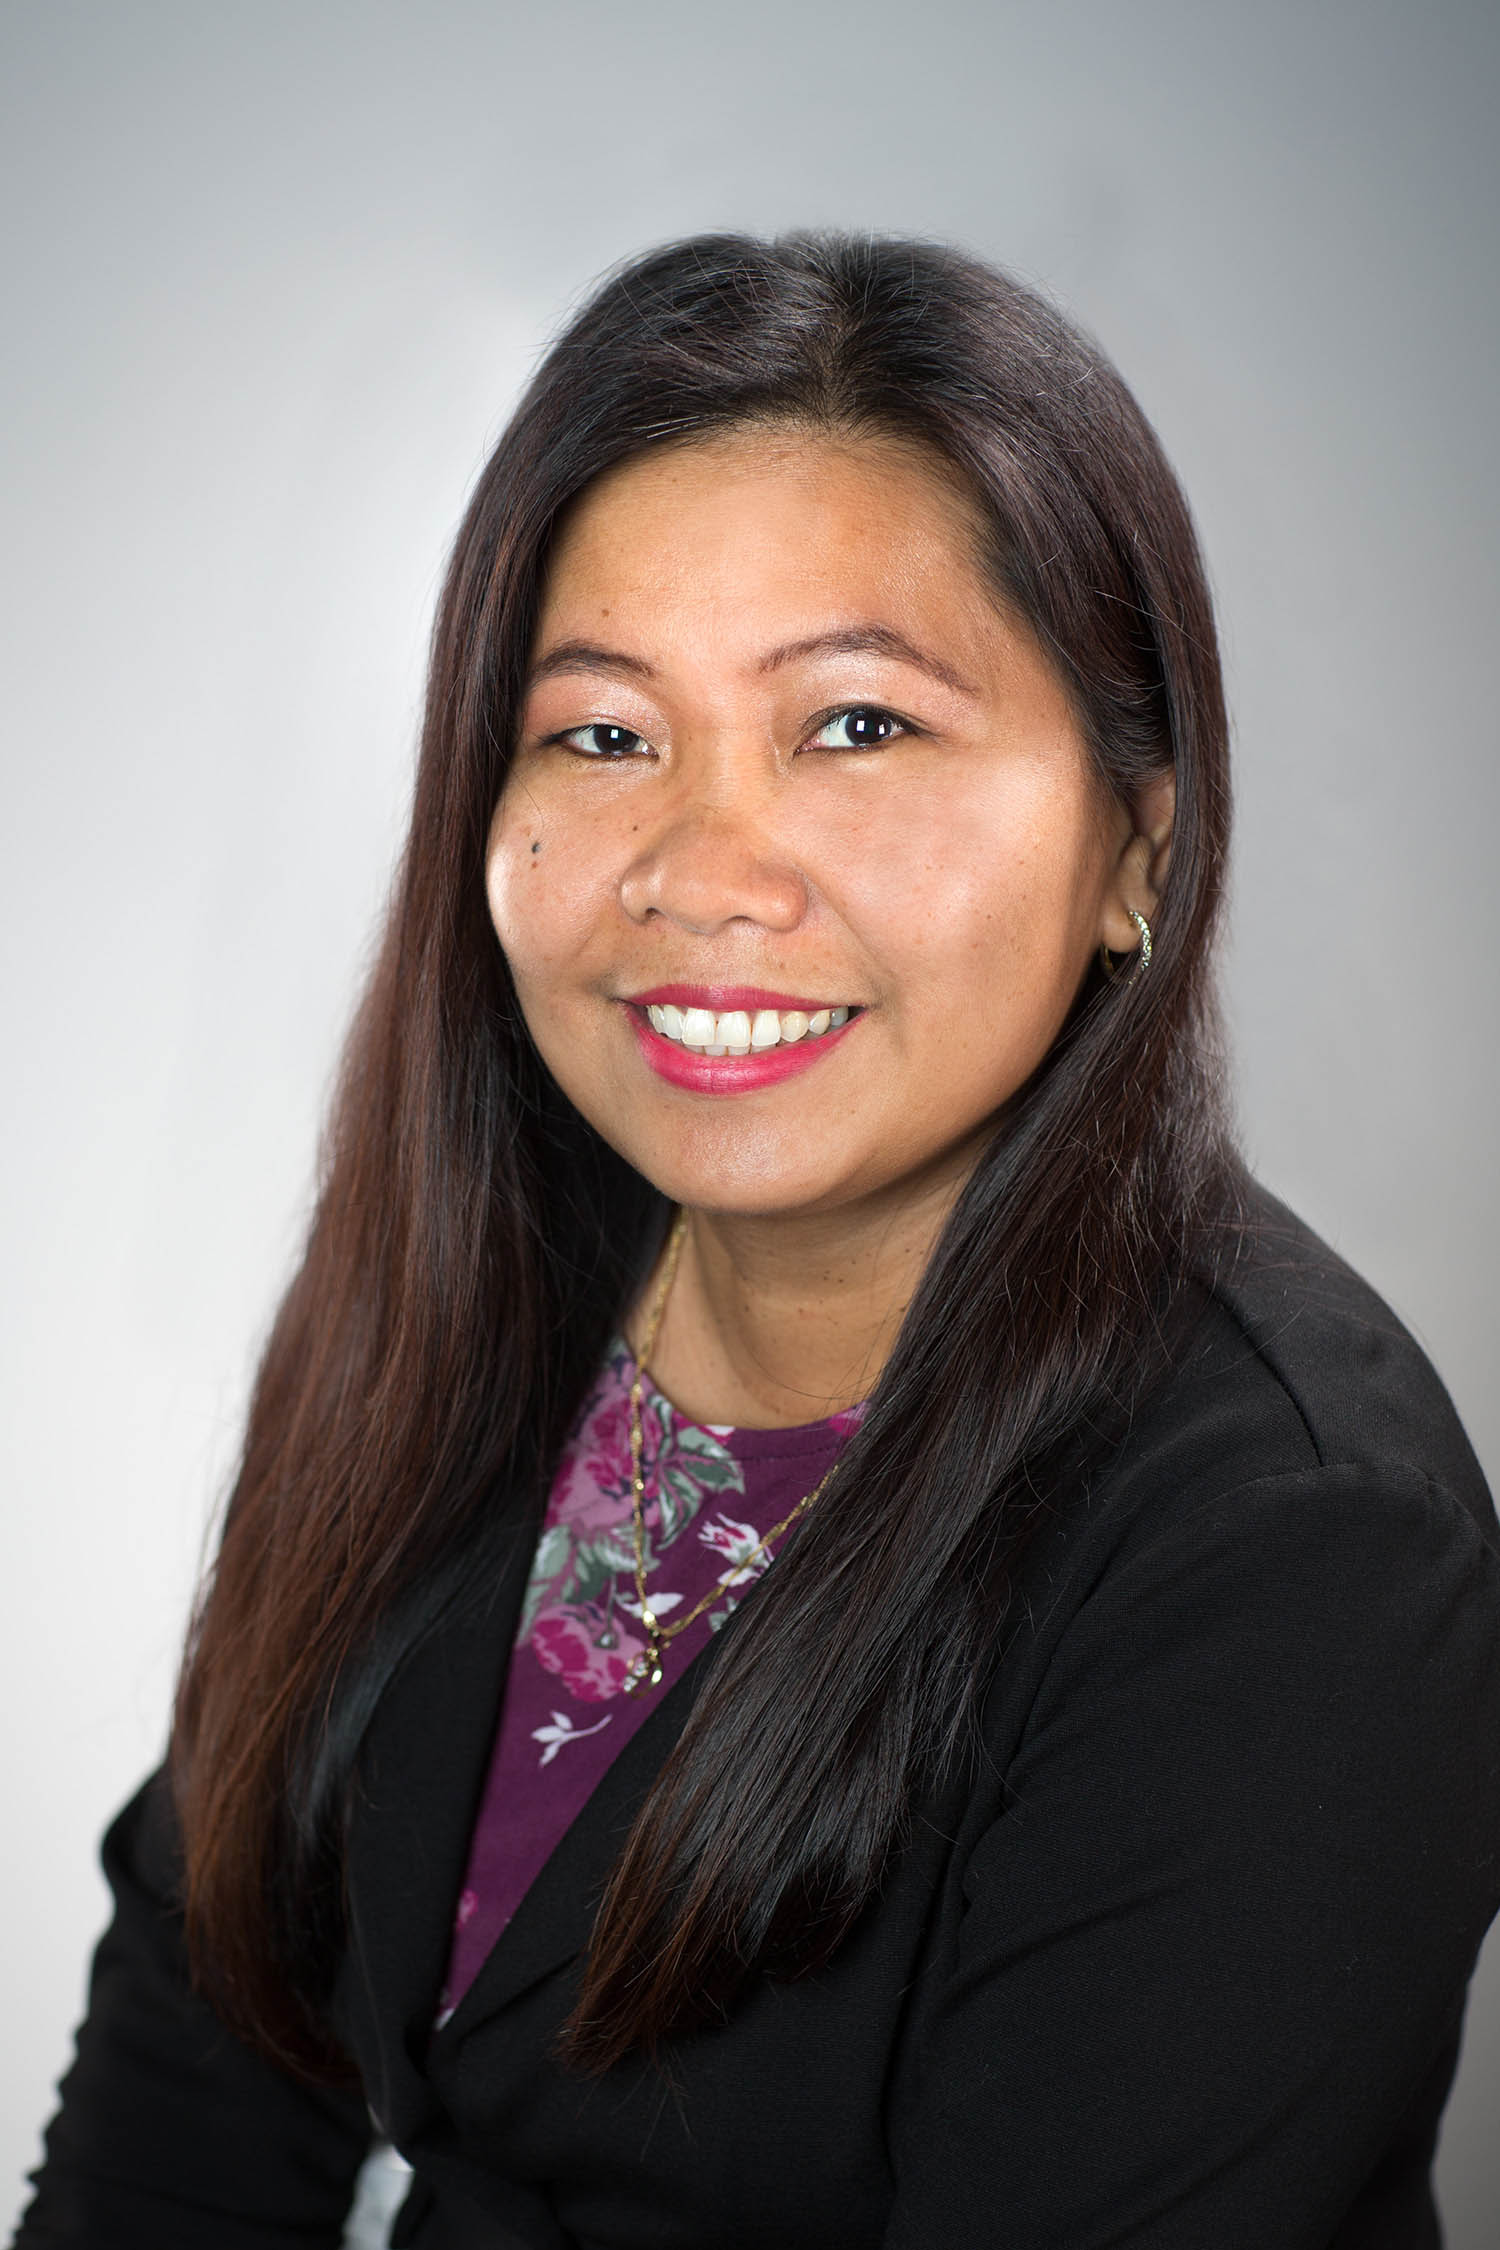 Analin Williams - Analin Williams attend and graduated High School in Northern Bataan Institute, she graduated college at Systems Plus Computer College in the Philippines where she finished her associate degree in Computer Secretarial, and practice writing stenography. Then at the age of 19 years old Analin got her license for Real estate in the Philippines. Despite of her busy schedule she did not stop exploring and worked in Computer Integration plus as an encoder for 3 years where she enjoyed both jobs. Then at her mid 20's worked at the hotel and restaurant as a book keeper, short after she was hired got promoted as an assistant manager. Analin ran her own KTV bar in the Philippines. In 2006 Analin migrated in the United States with her husband and worked for MAURIZI ISL HOMES full time as a houseparent (direct support professional) who took care 3 individuals who has intellectual disabilities for almost 4years. Since then, she found her passion working with individuals who have intellectual disabilities. In 2010 she worked as a CIST for MAURIZI ISL HOMES assisting direct support professional to fulfill their duties and responsibilities, and to ensure the 37 individuals they supported to have a meaningful day and a quality of life. She is now working for MAURIZI ISL HOMES as a Program Manager.